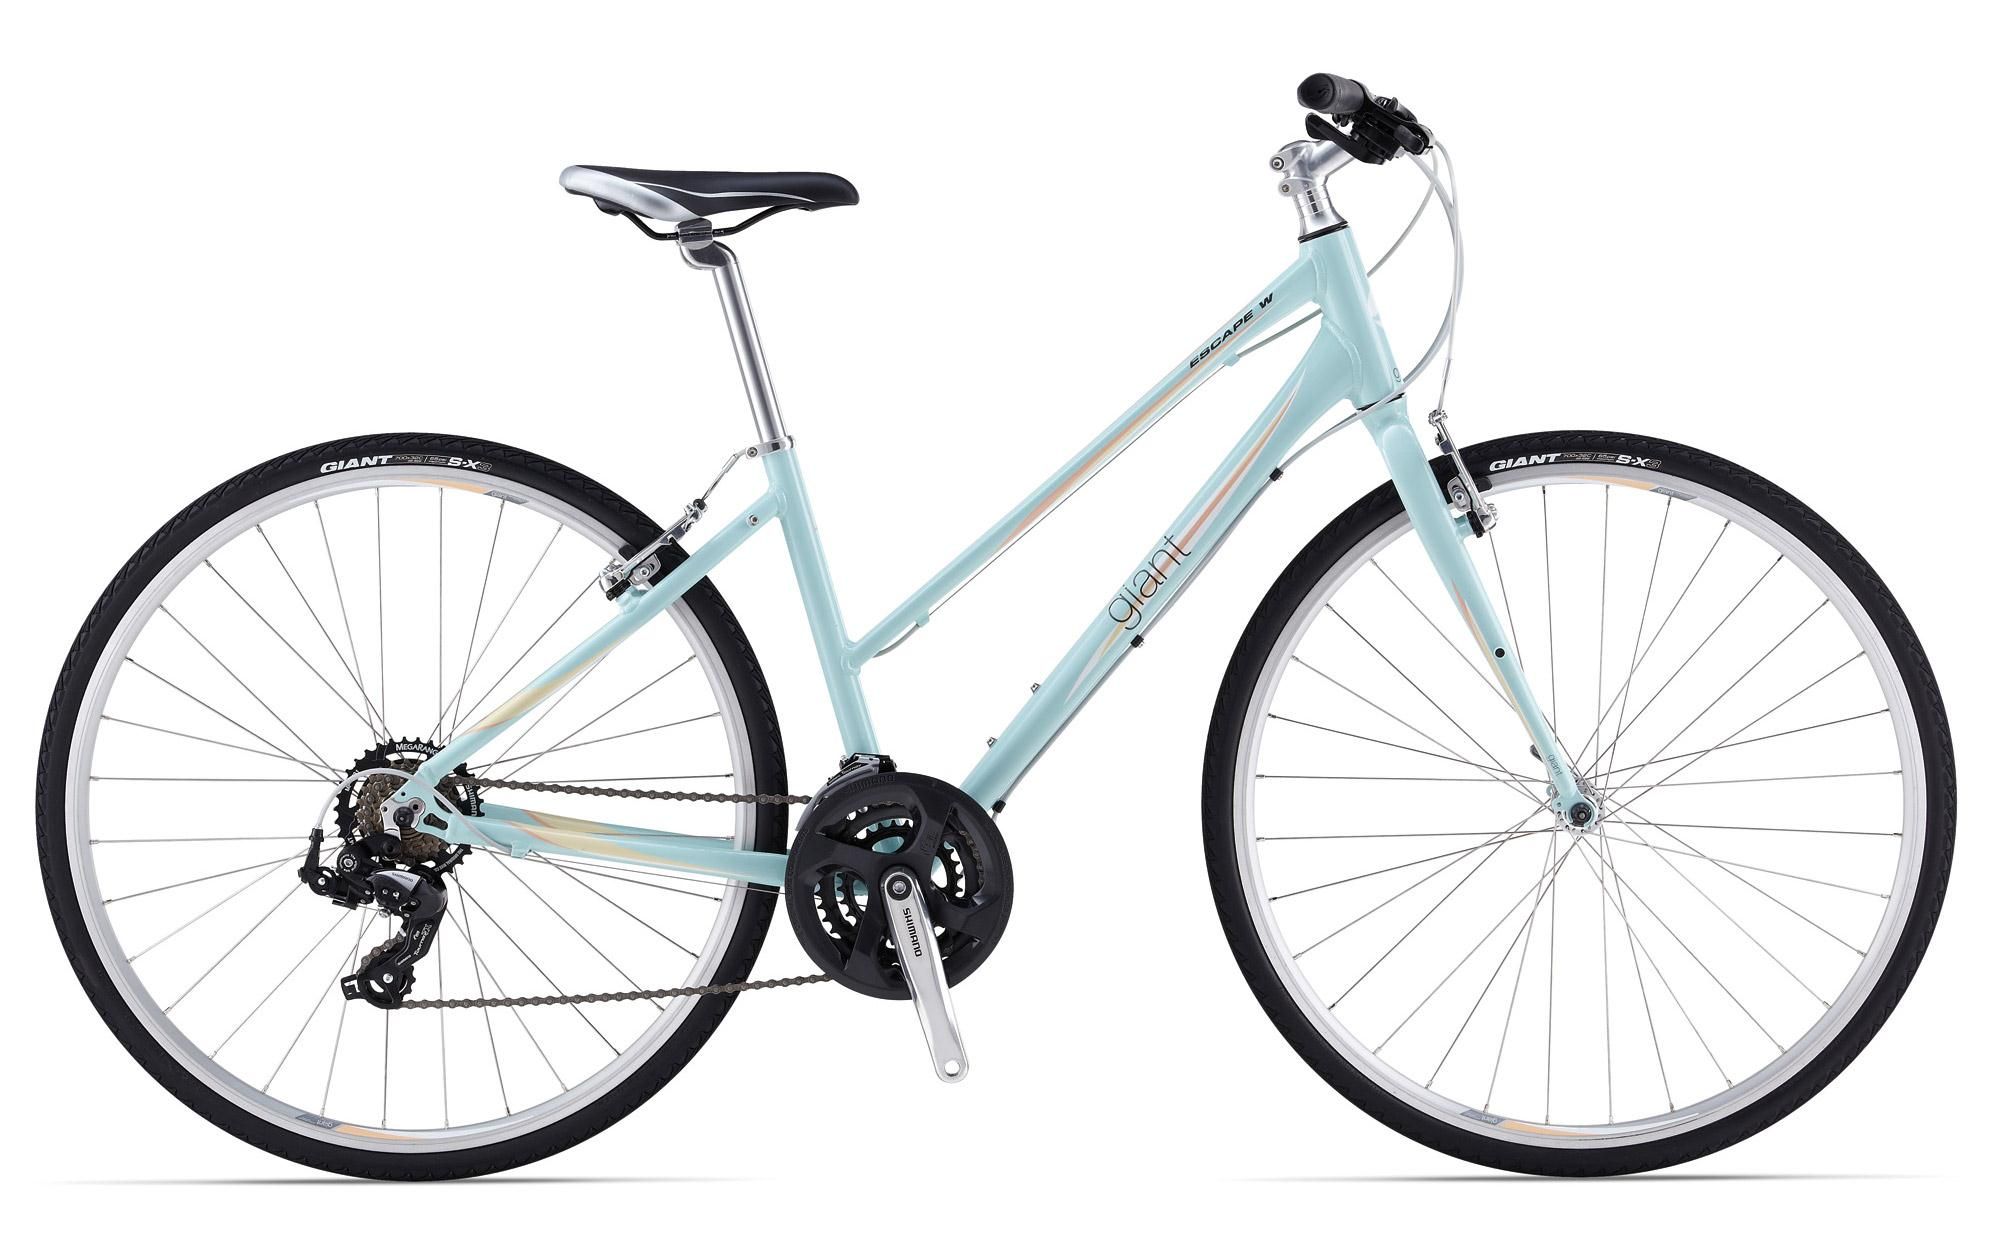 http://www.giant-bicycles.com/_generated/_generated_uk/bikes/models/images/2000/2014/2014_Liv_giant_escape_3_w_mint.jpg